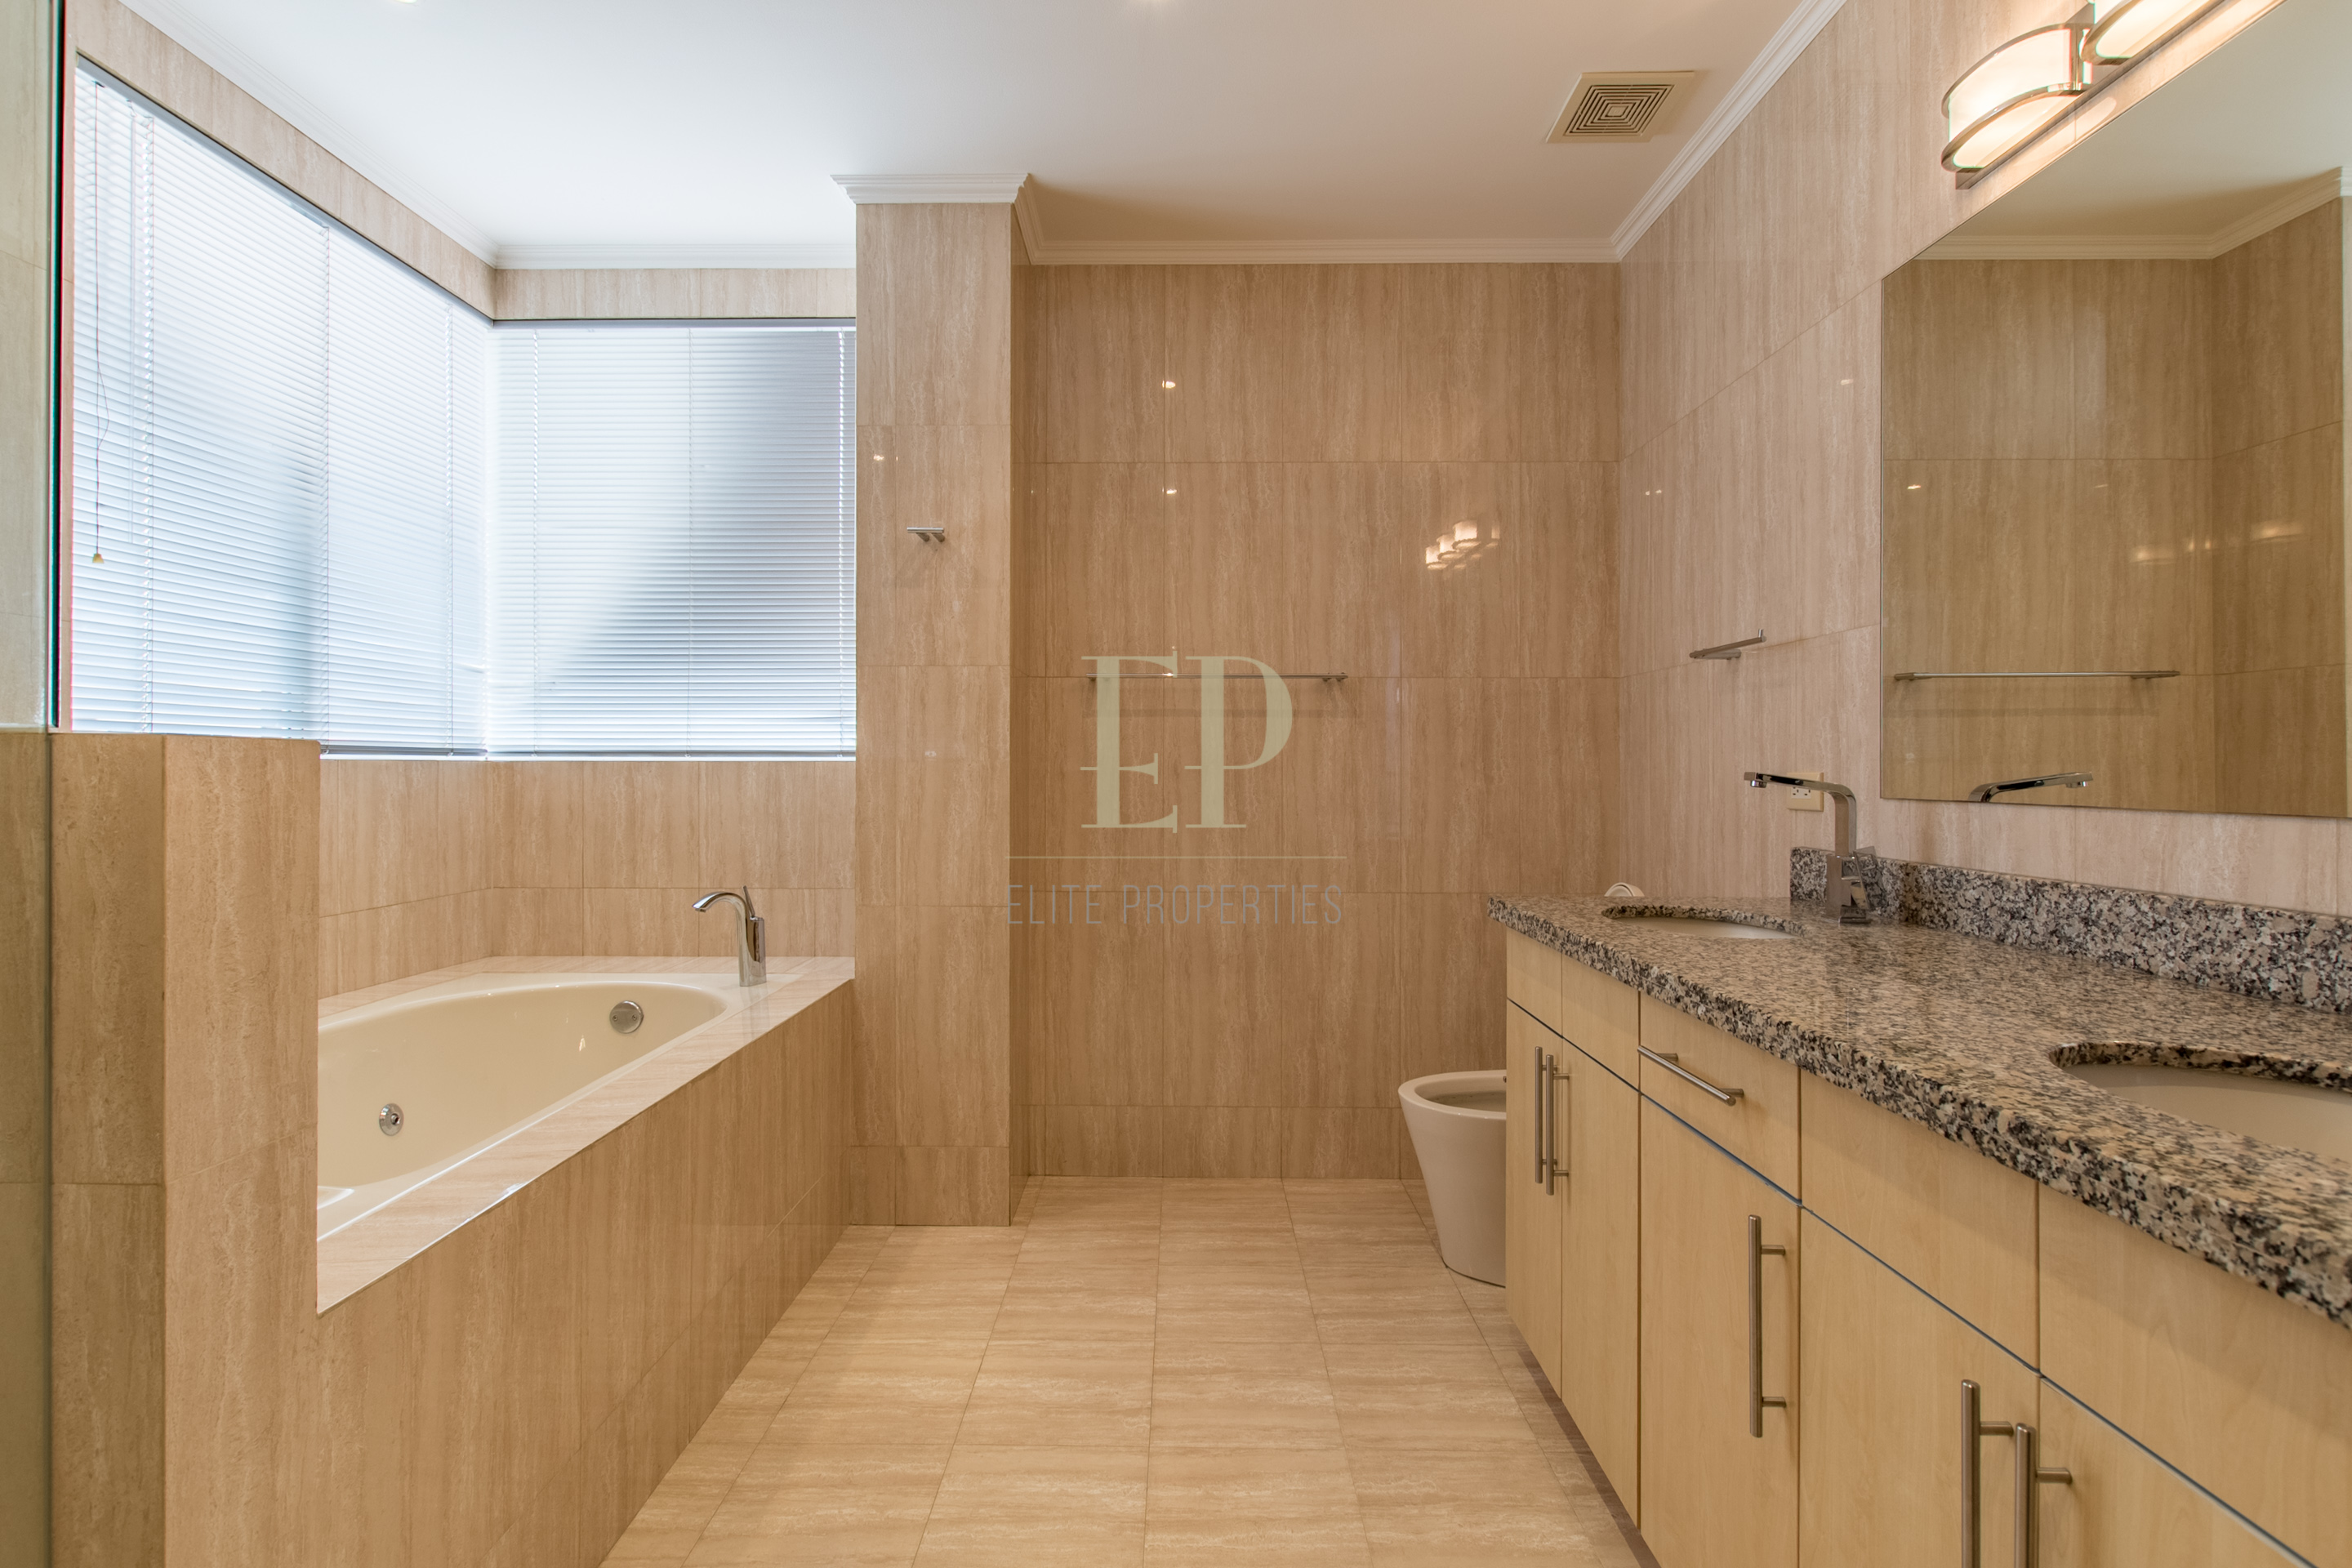 Unfurnished, modern apartment with terrace, views, pool, tennis